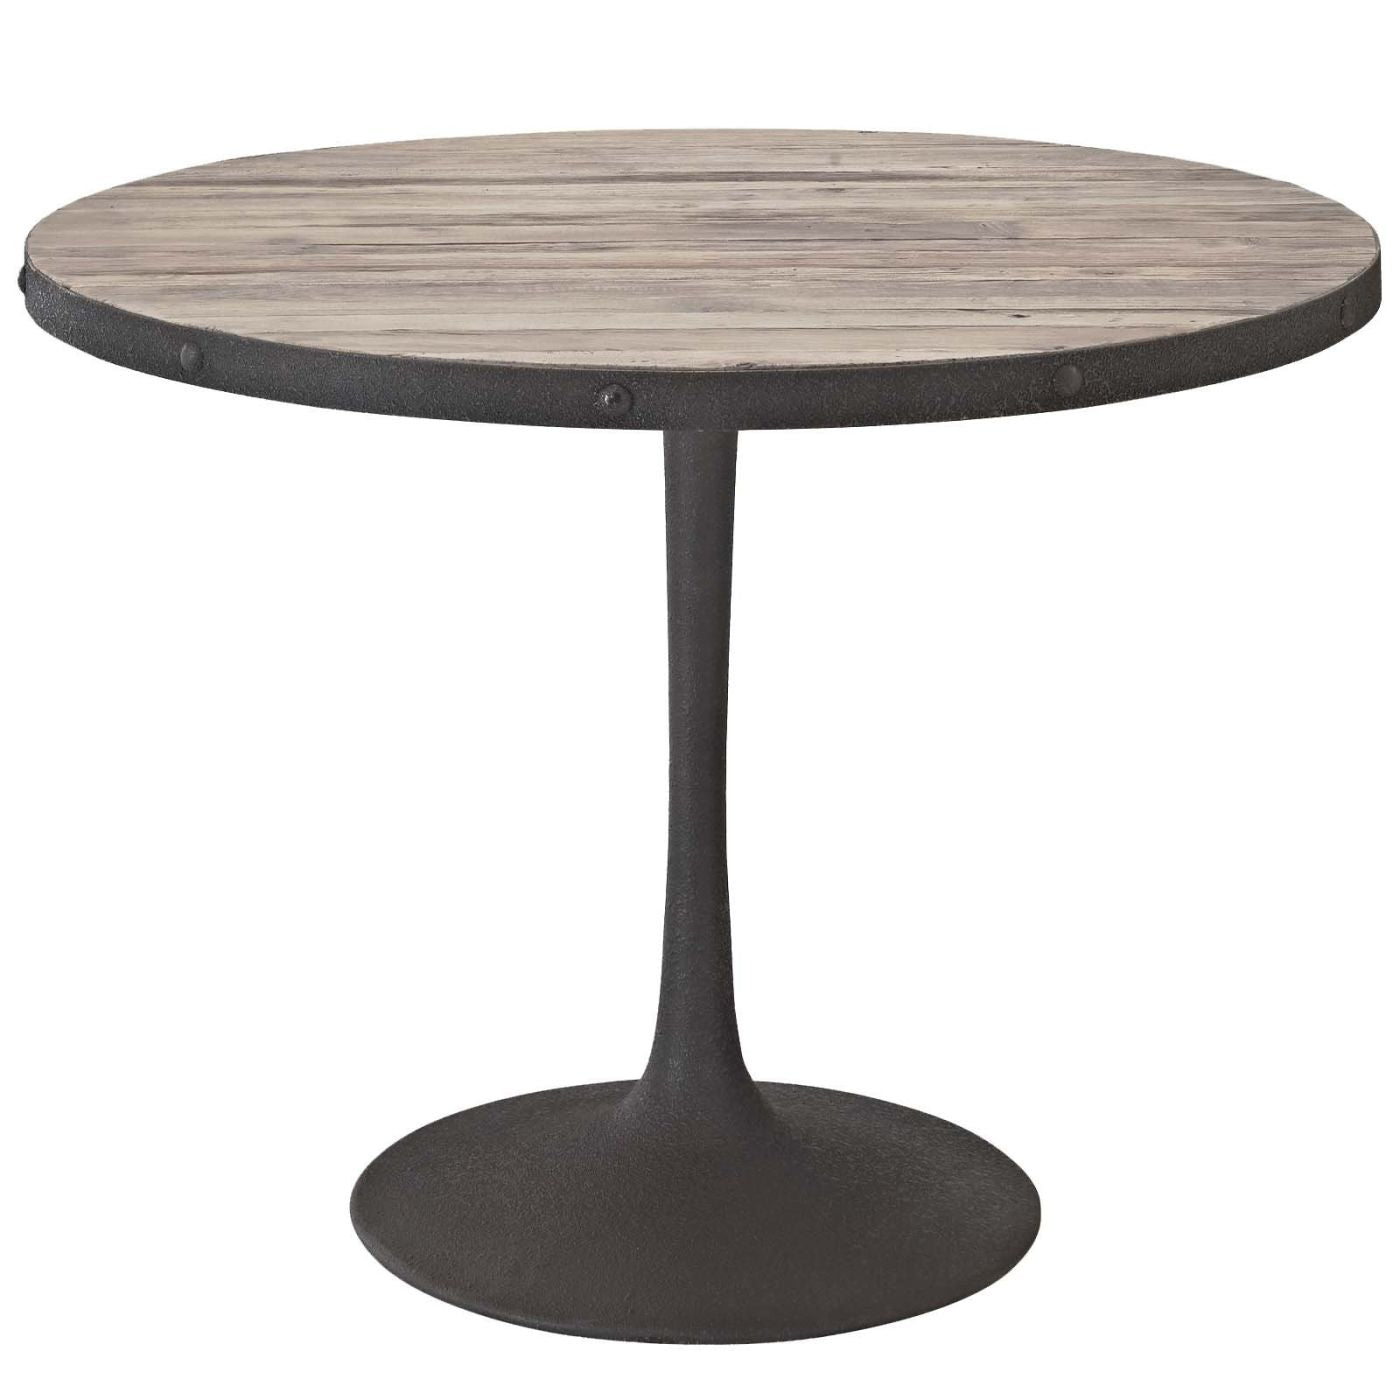 Modway Dining Tables On Sale. EEI-1197-BRN-SET Drive